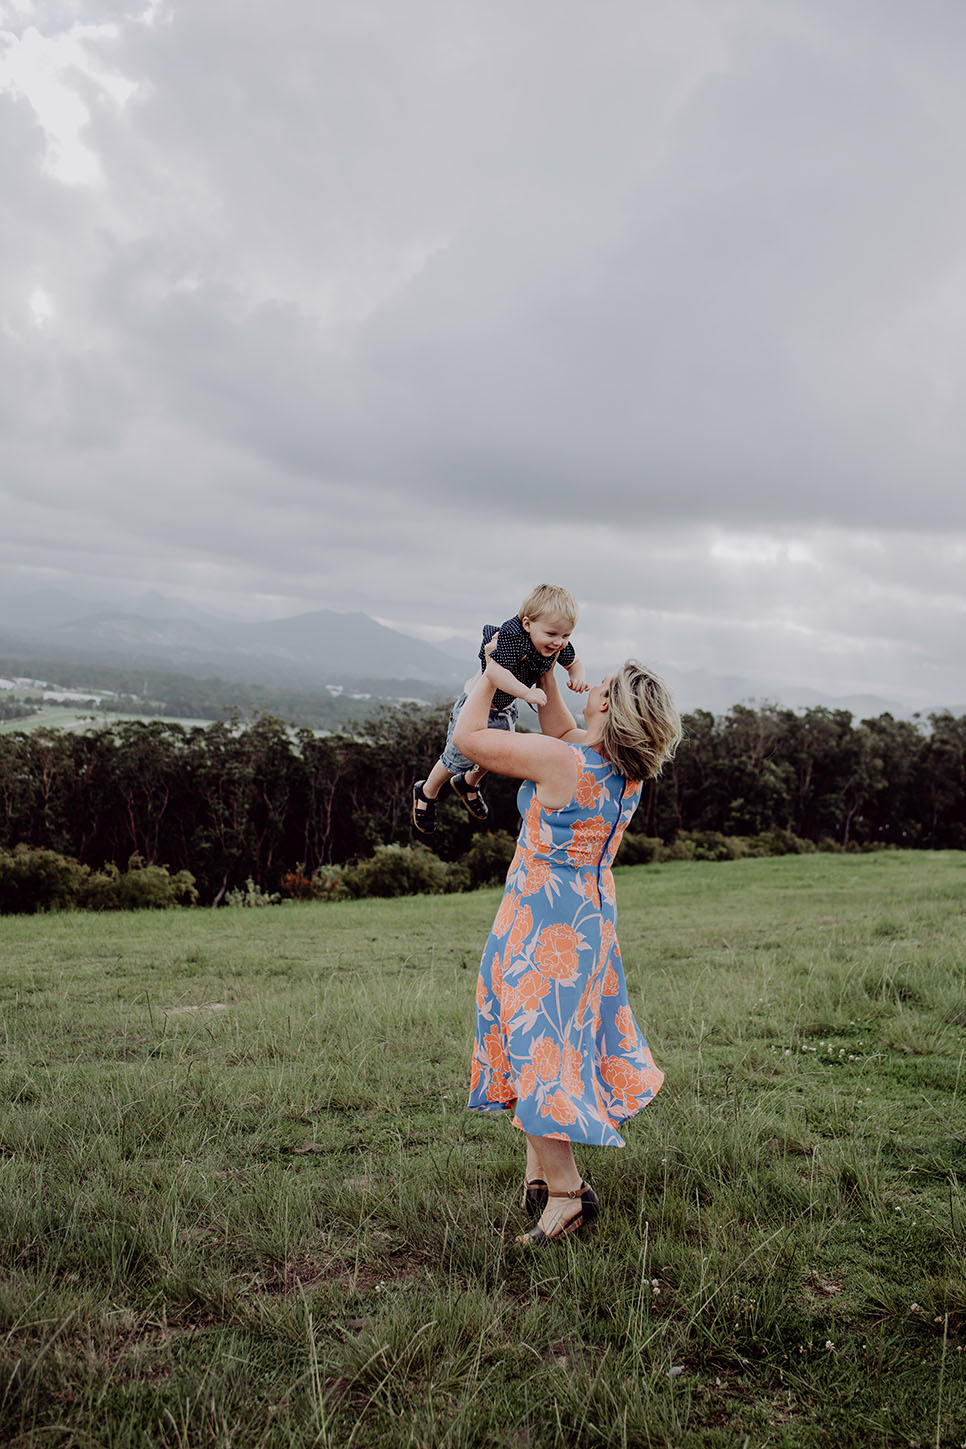 Family photography, childhood, mother and son, location, Alice Payne photography